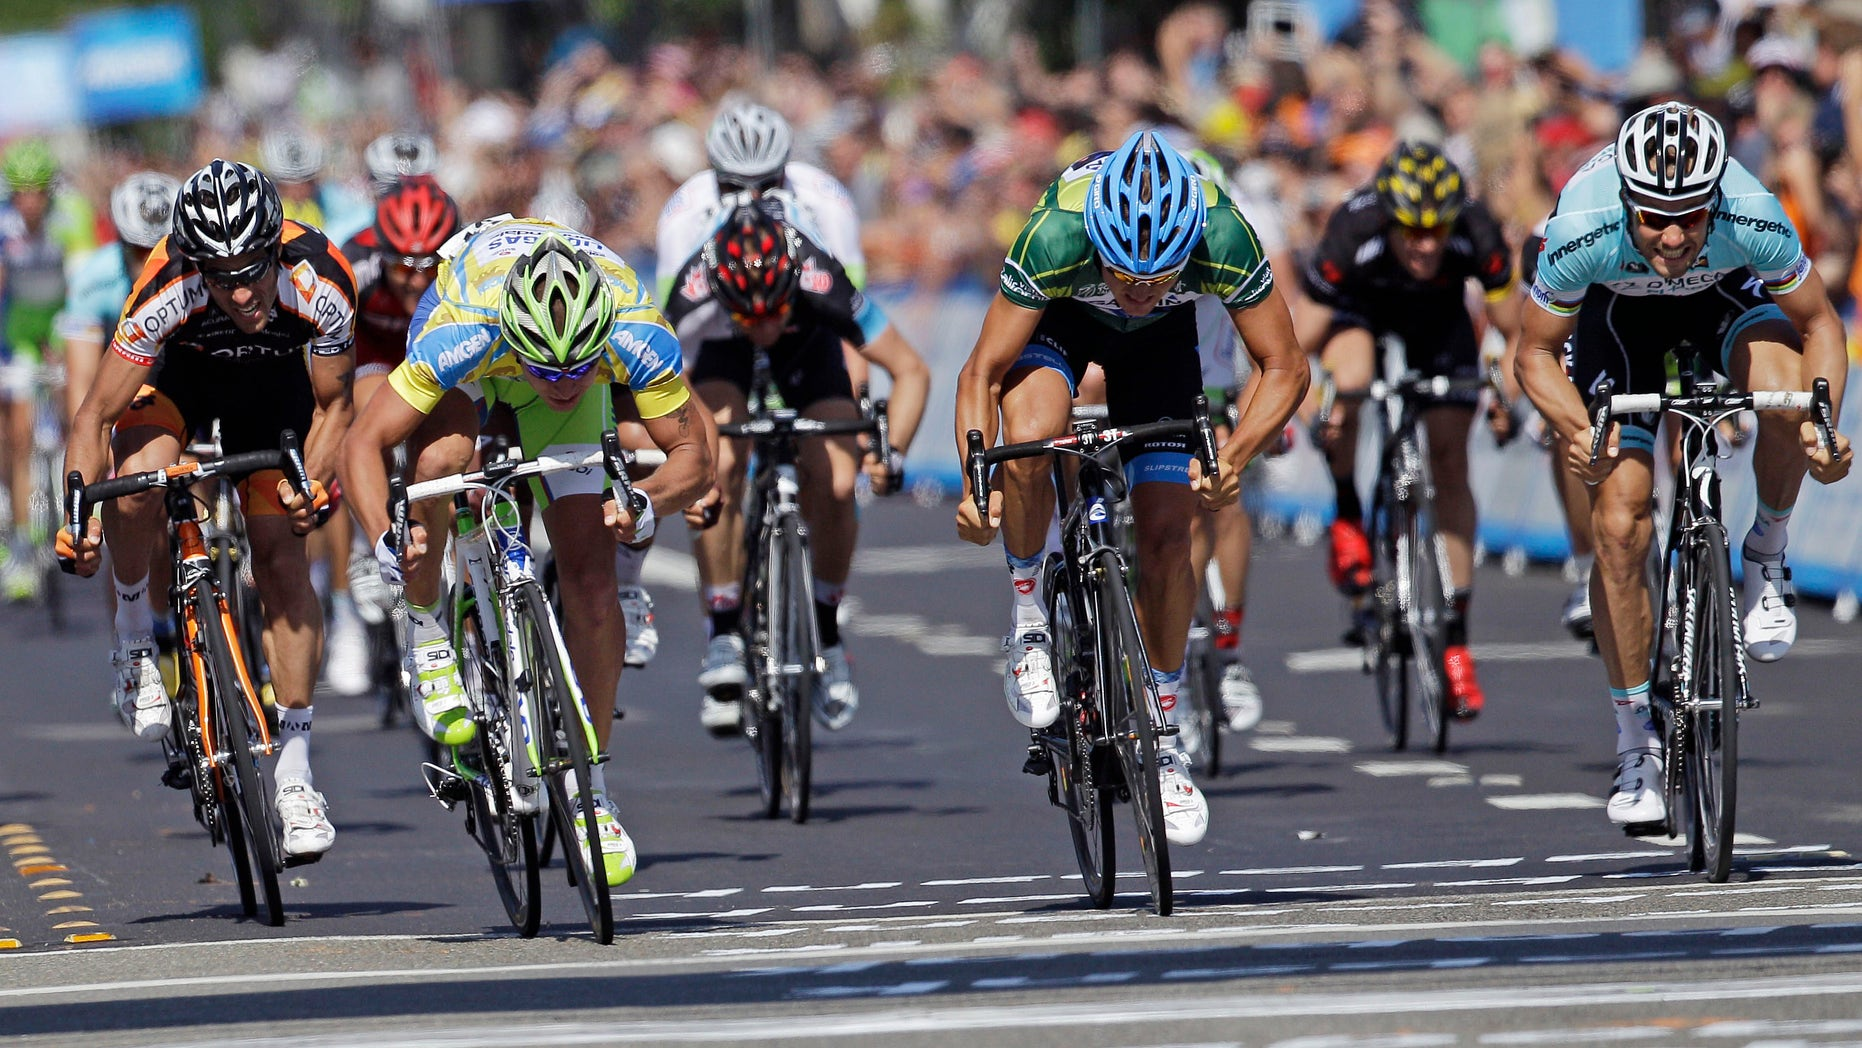 May 15, 2012: From left, Alexander Calendario; Peter Sagan, of Slovakia; Heinrich Haussler, of Australia; and Tom Boonen, of Belgium, sprint to the finish during Stage 3 of the Tour of California cycling race in Livermore, Calif.